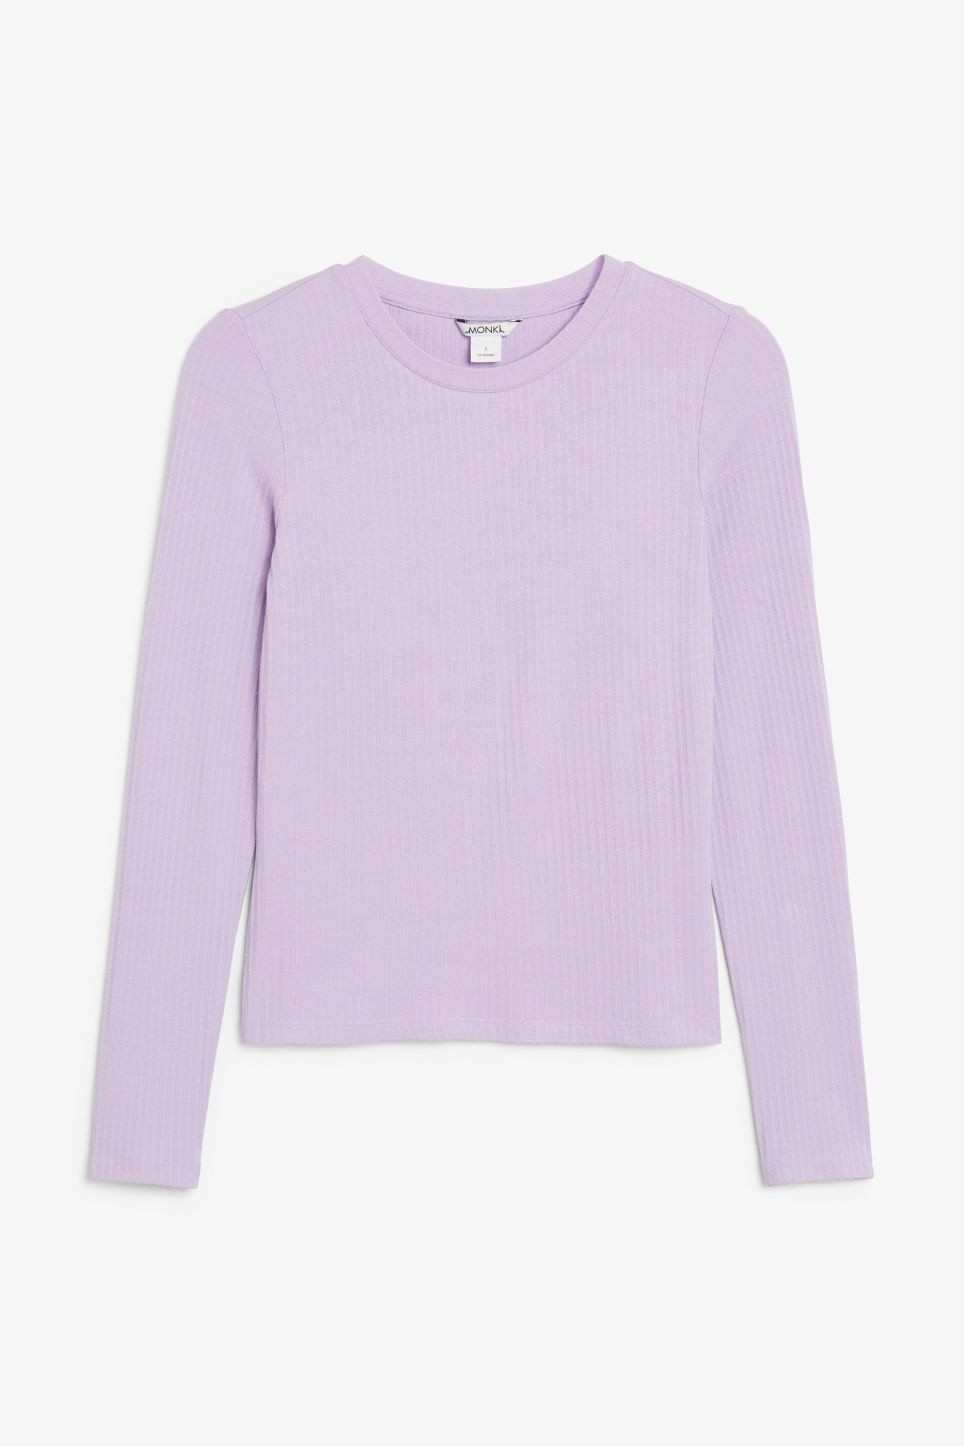 Sleeved Lilac Candy Tops Monki Long Top DkStyle Ribbed 6gfvb7IYy